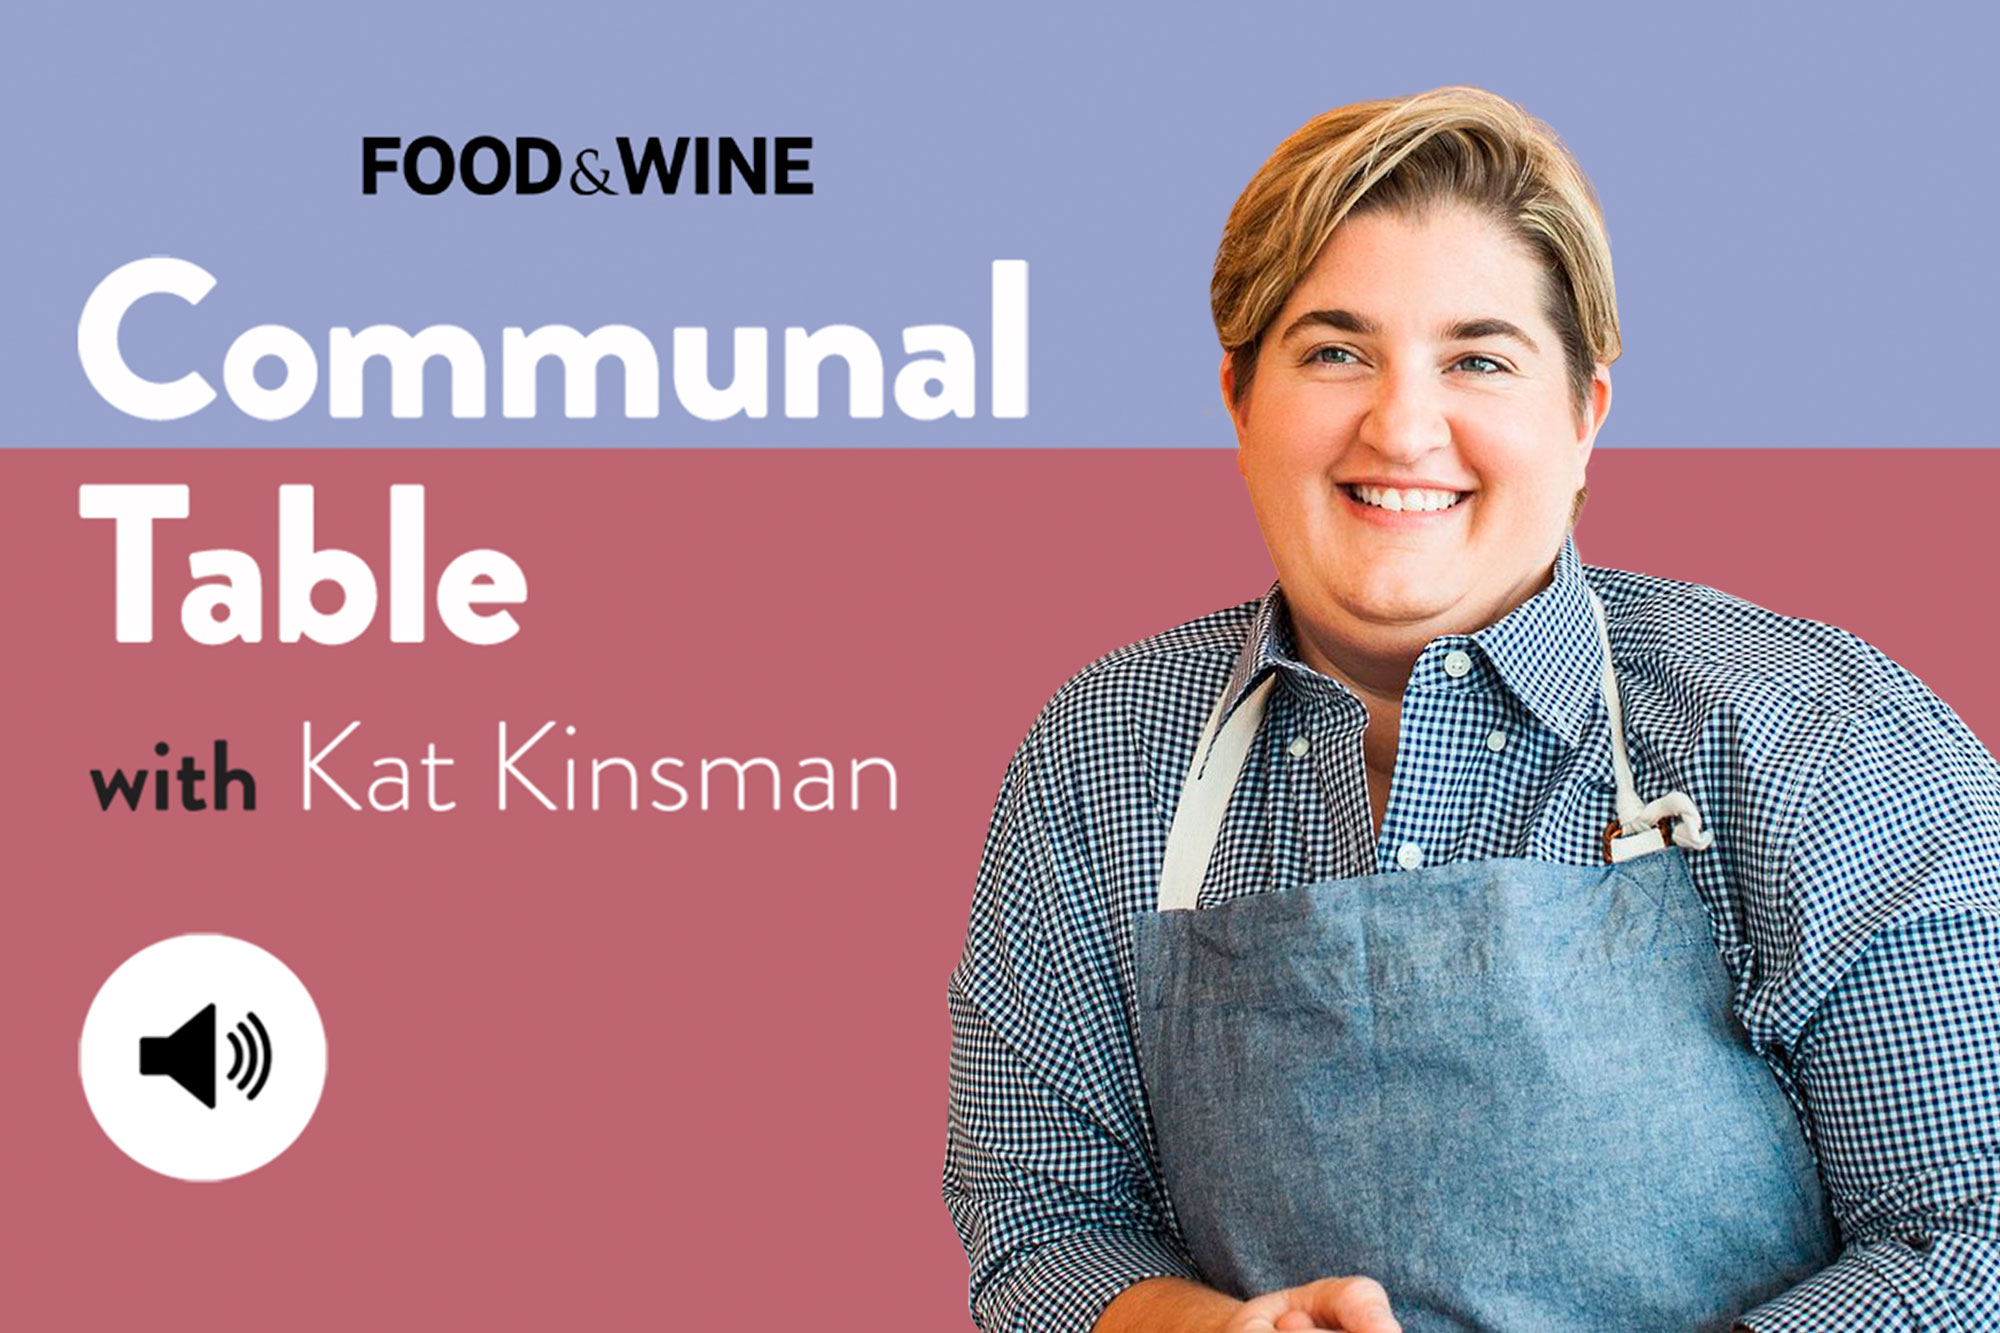 Communal Table with Kat Kinsman featuring Chef Kelly Fields